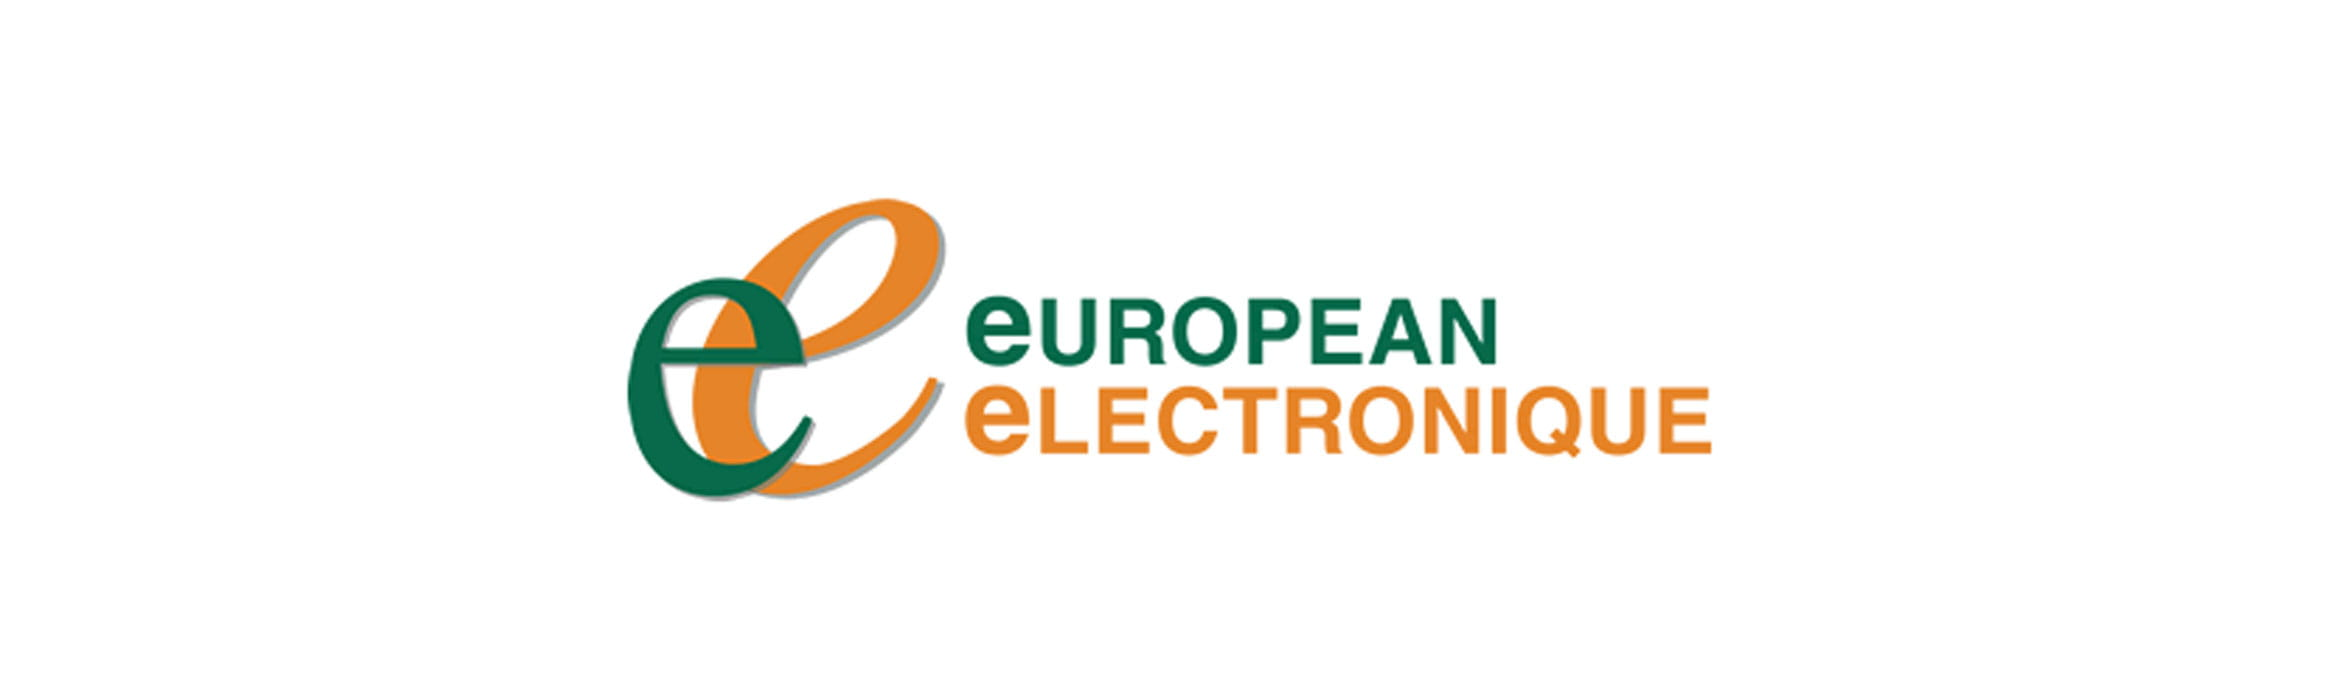 european electronique logo